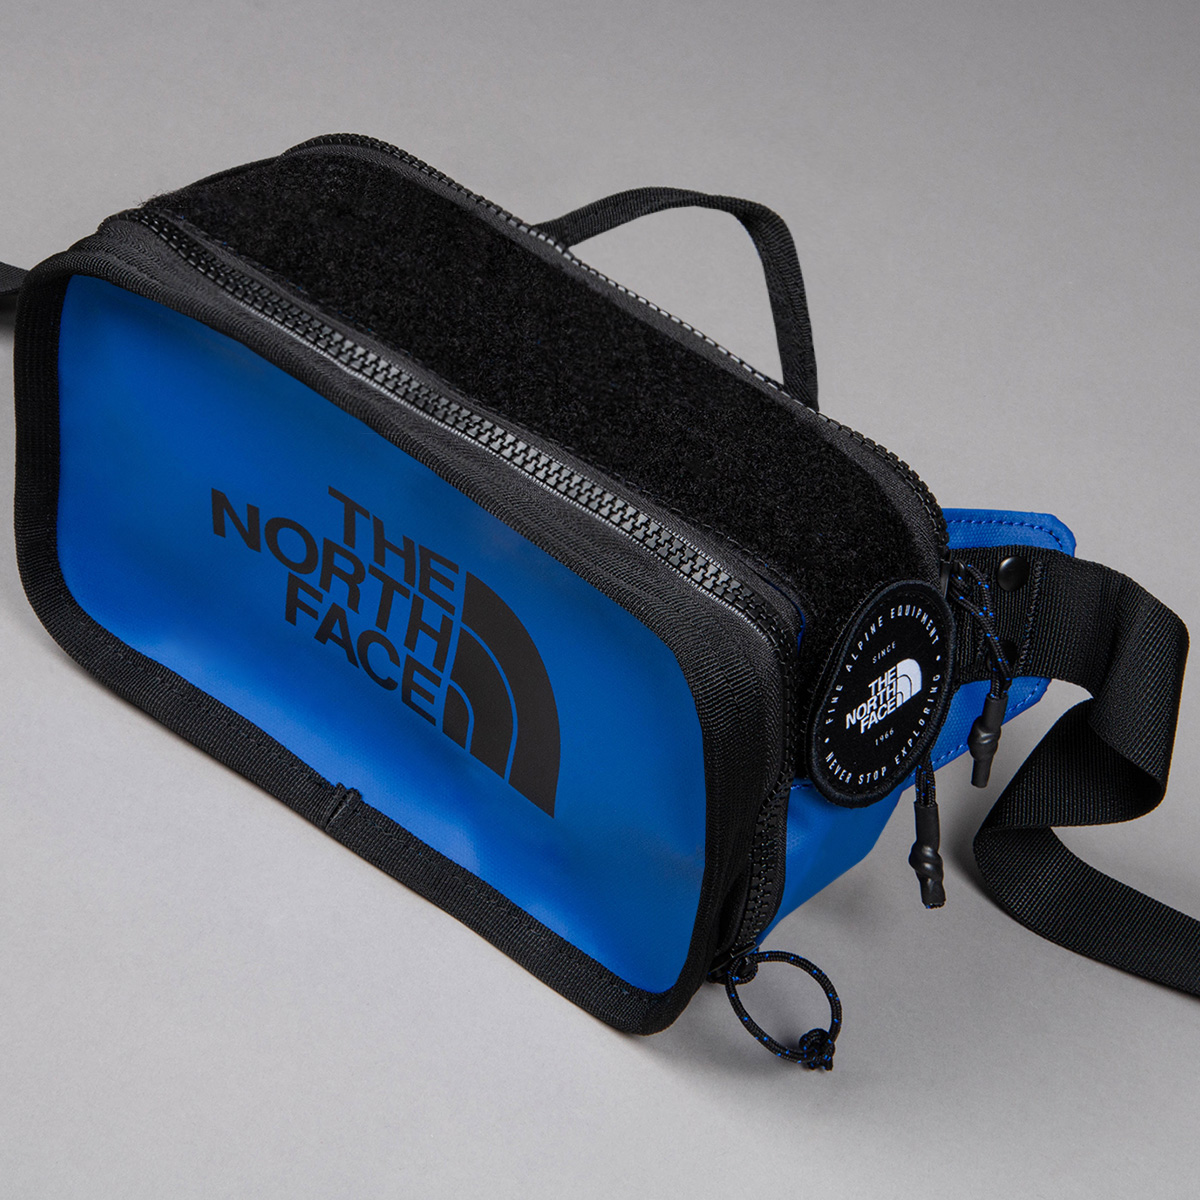 A blue The North Face cross body bag